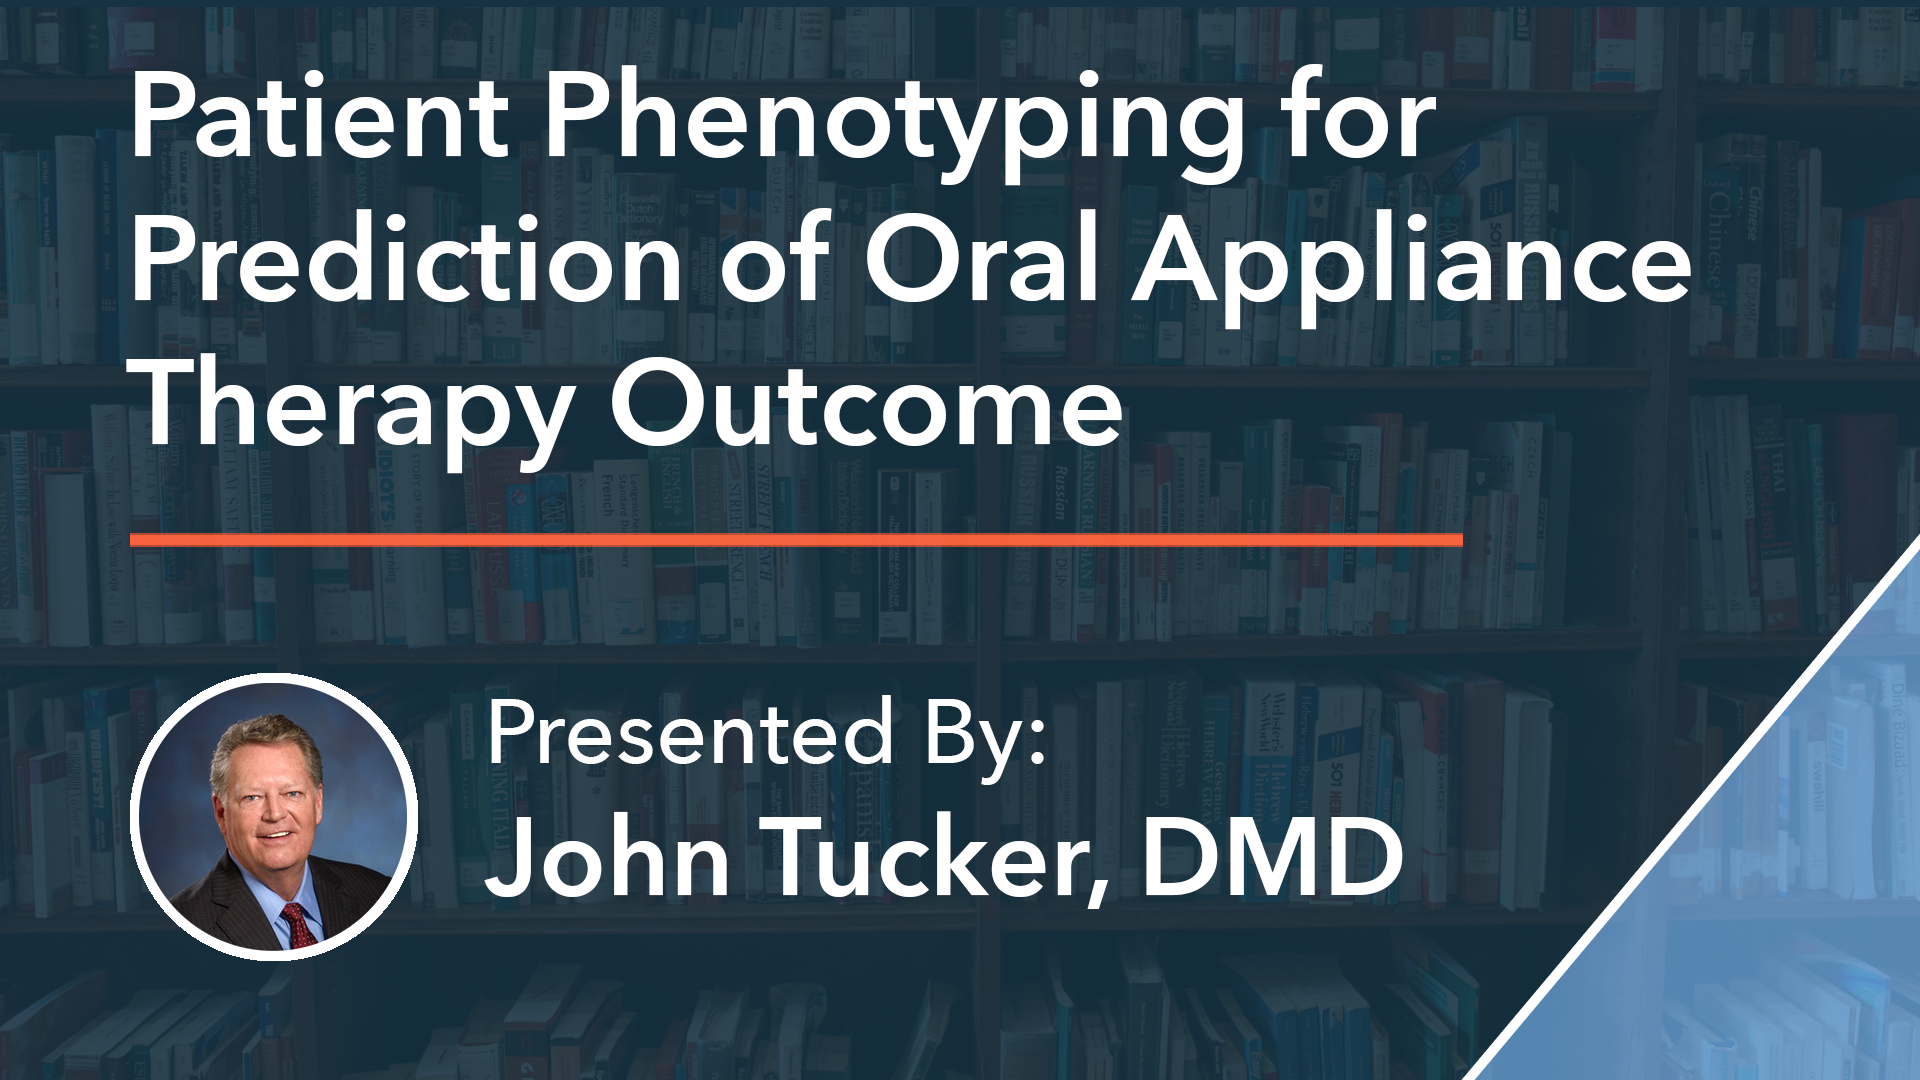 Patient Phenotyping for Prediction of Oral Appliance Therapy Outcome Dr John Tucker